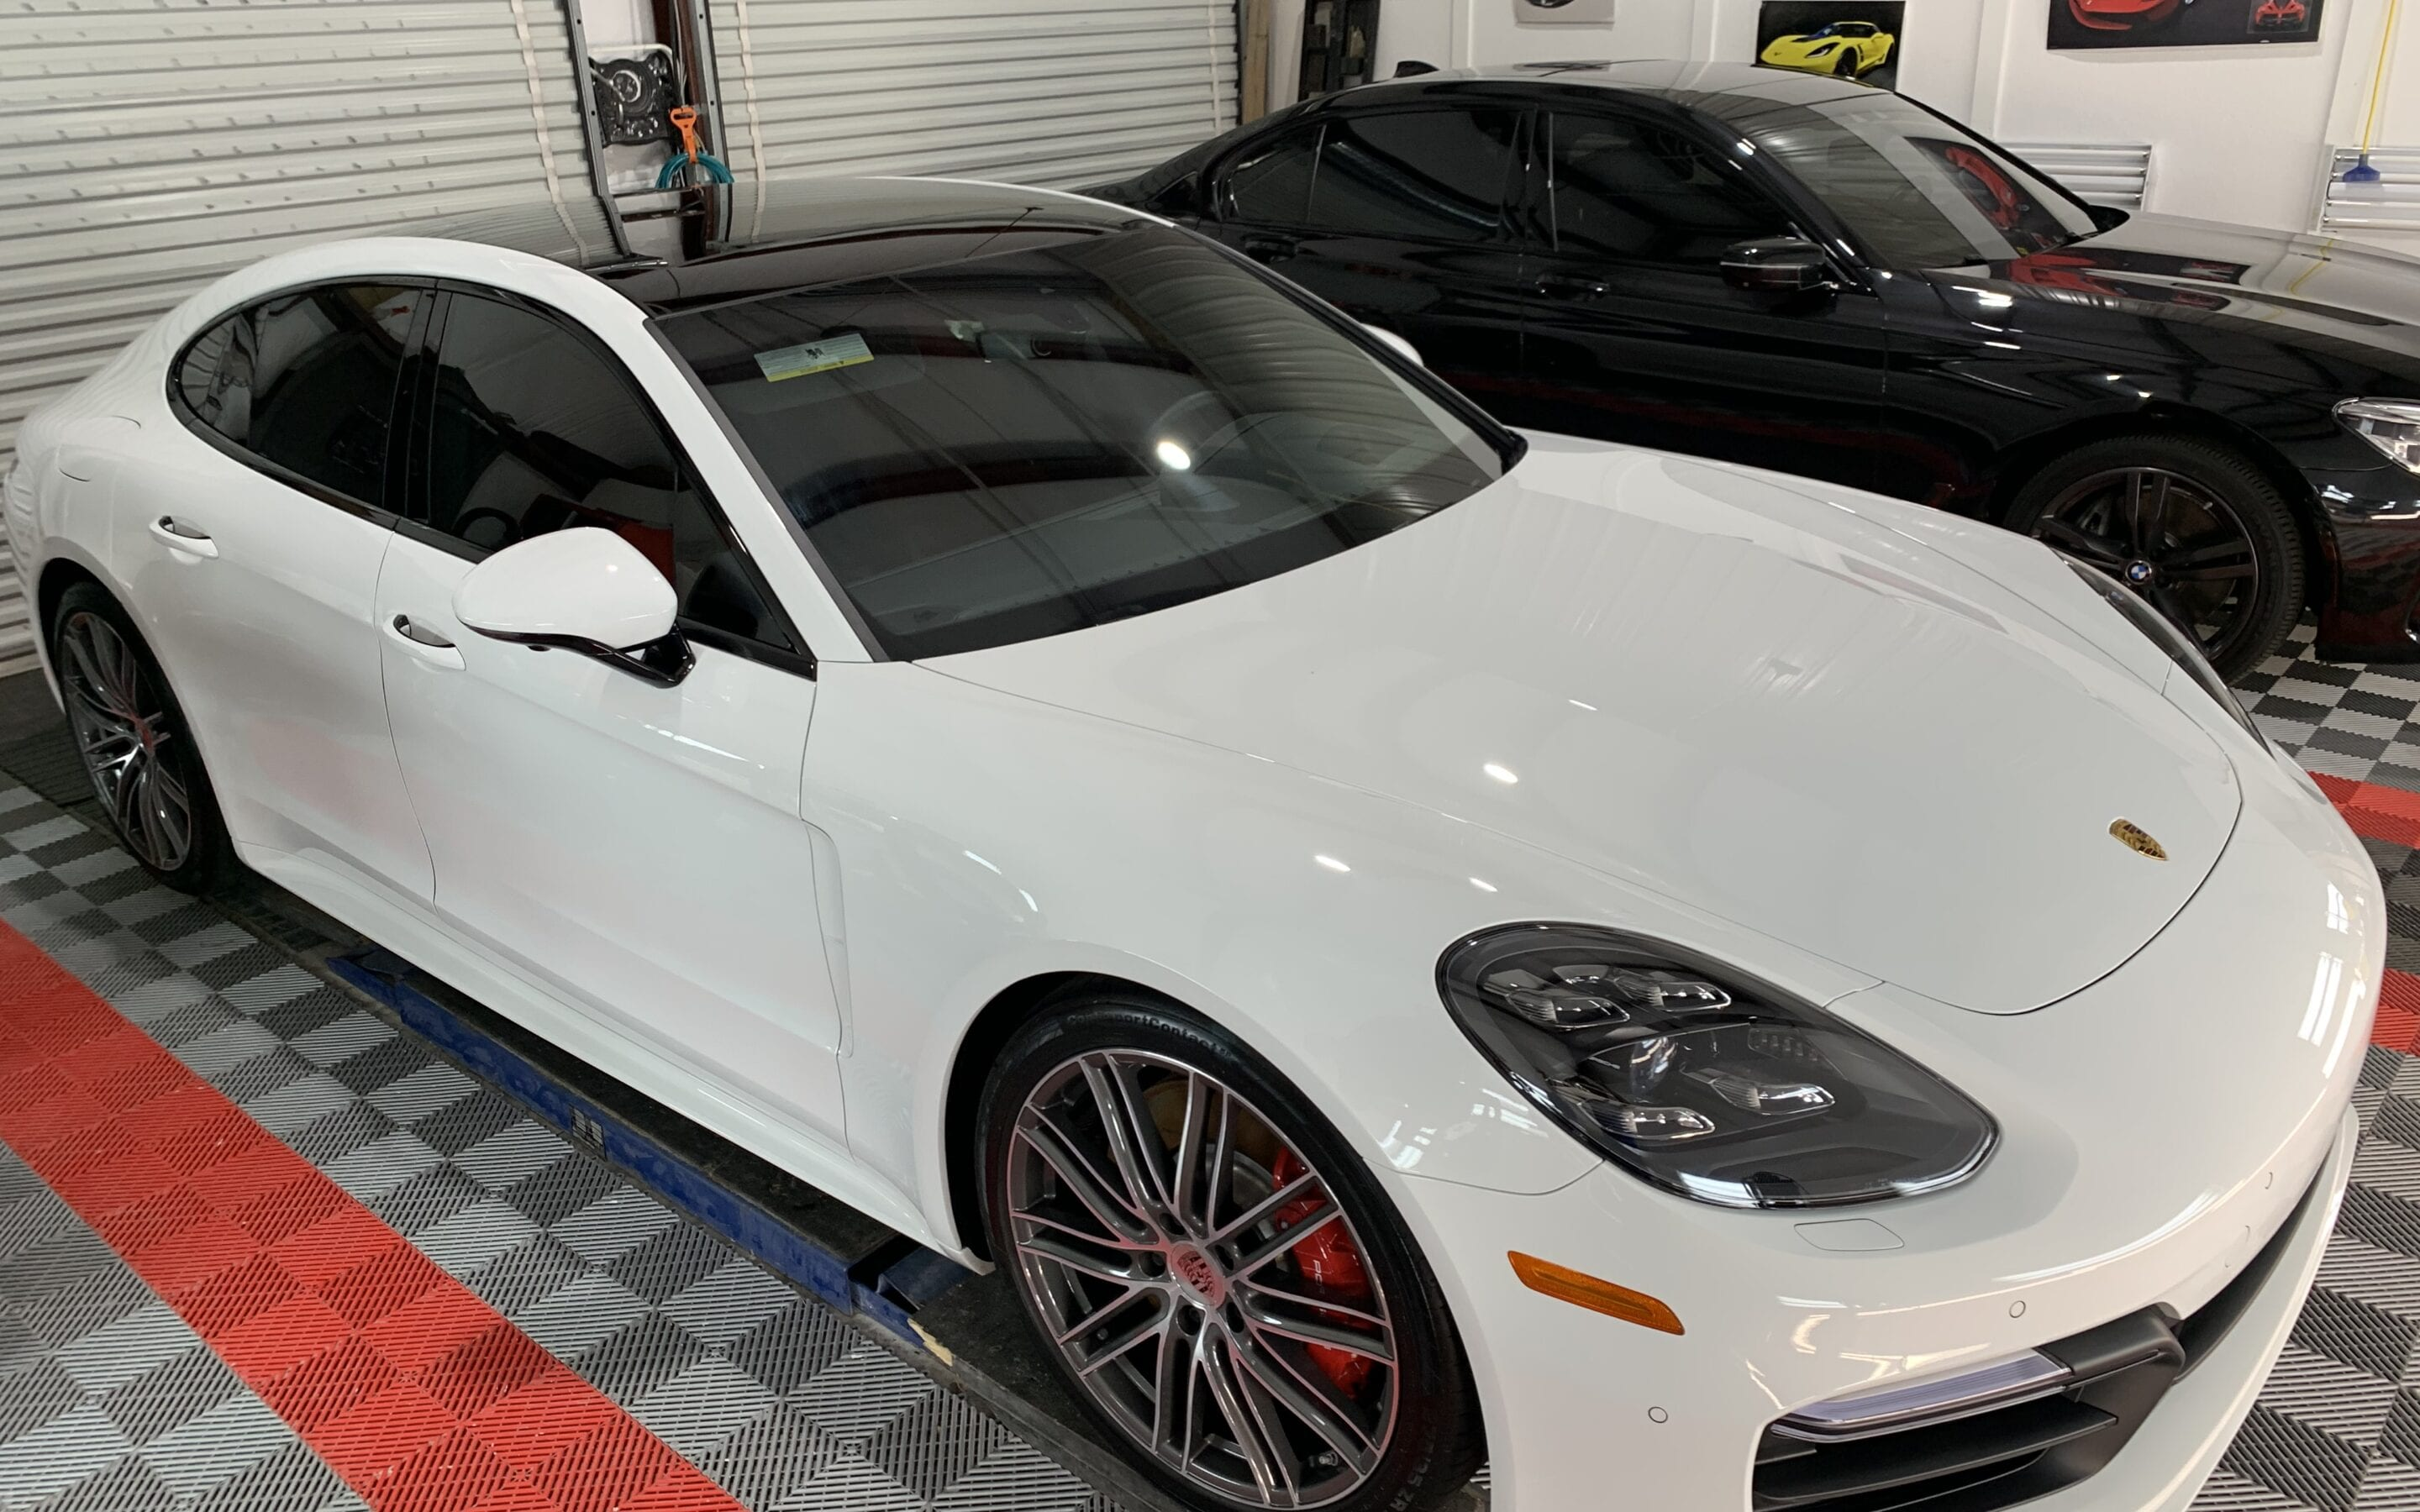 New Car Preparation of a 2019 Porsche Panamera